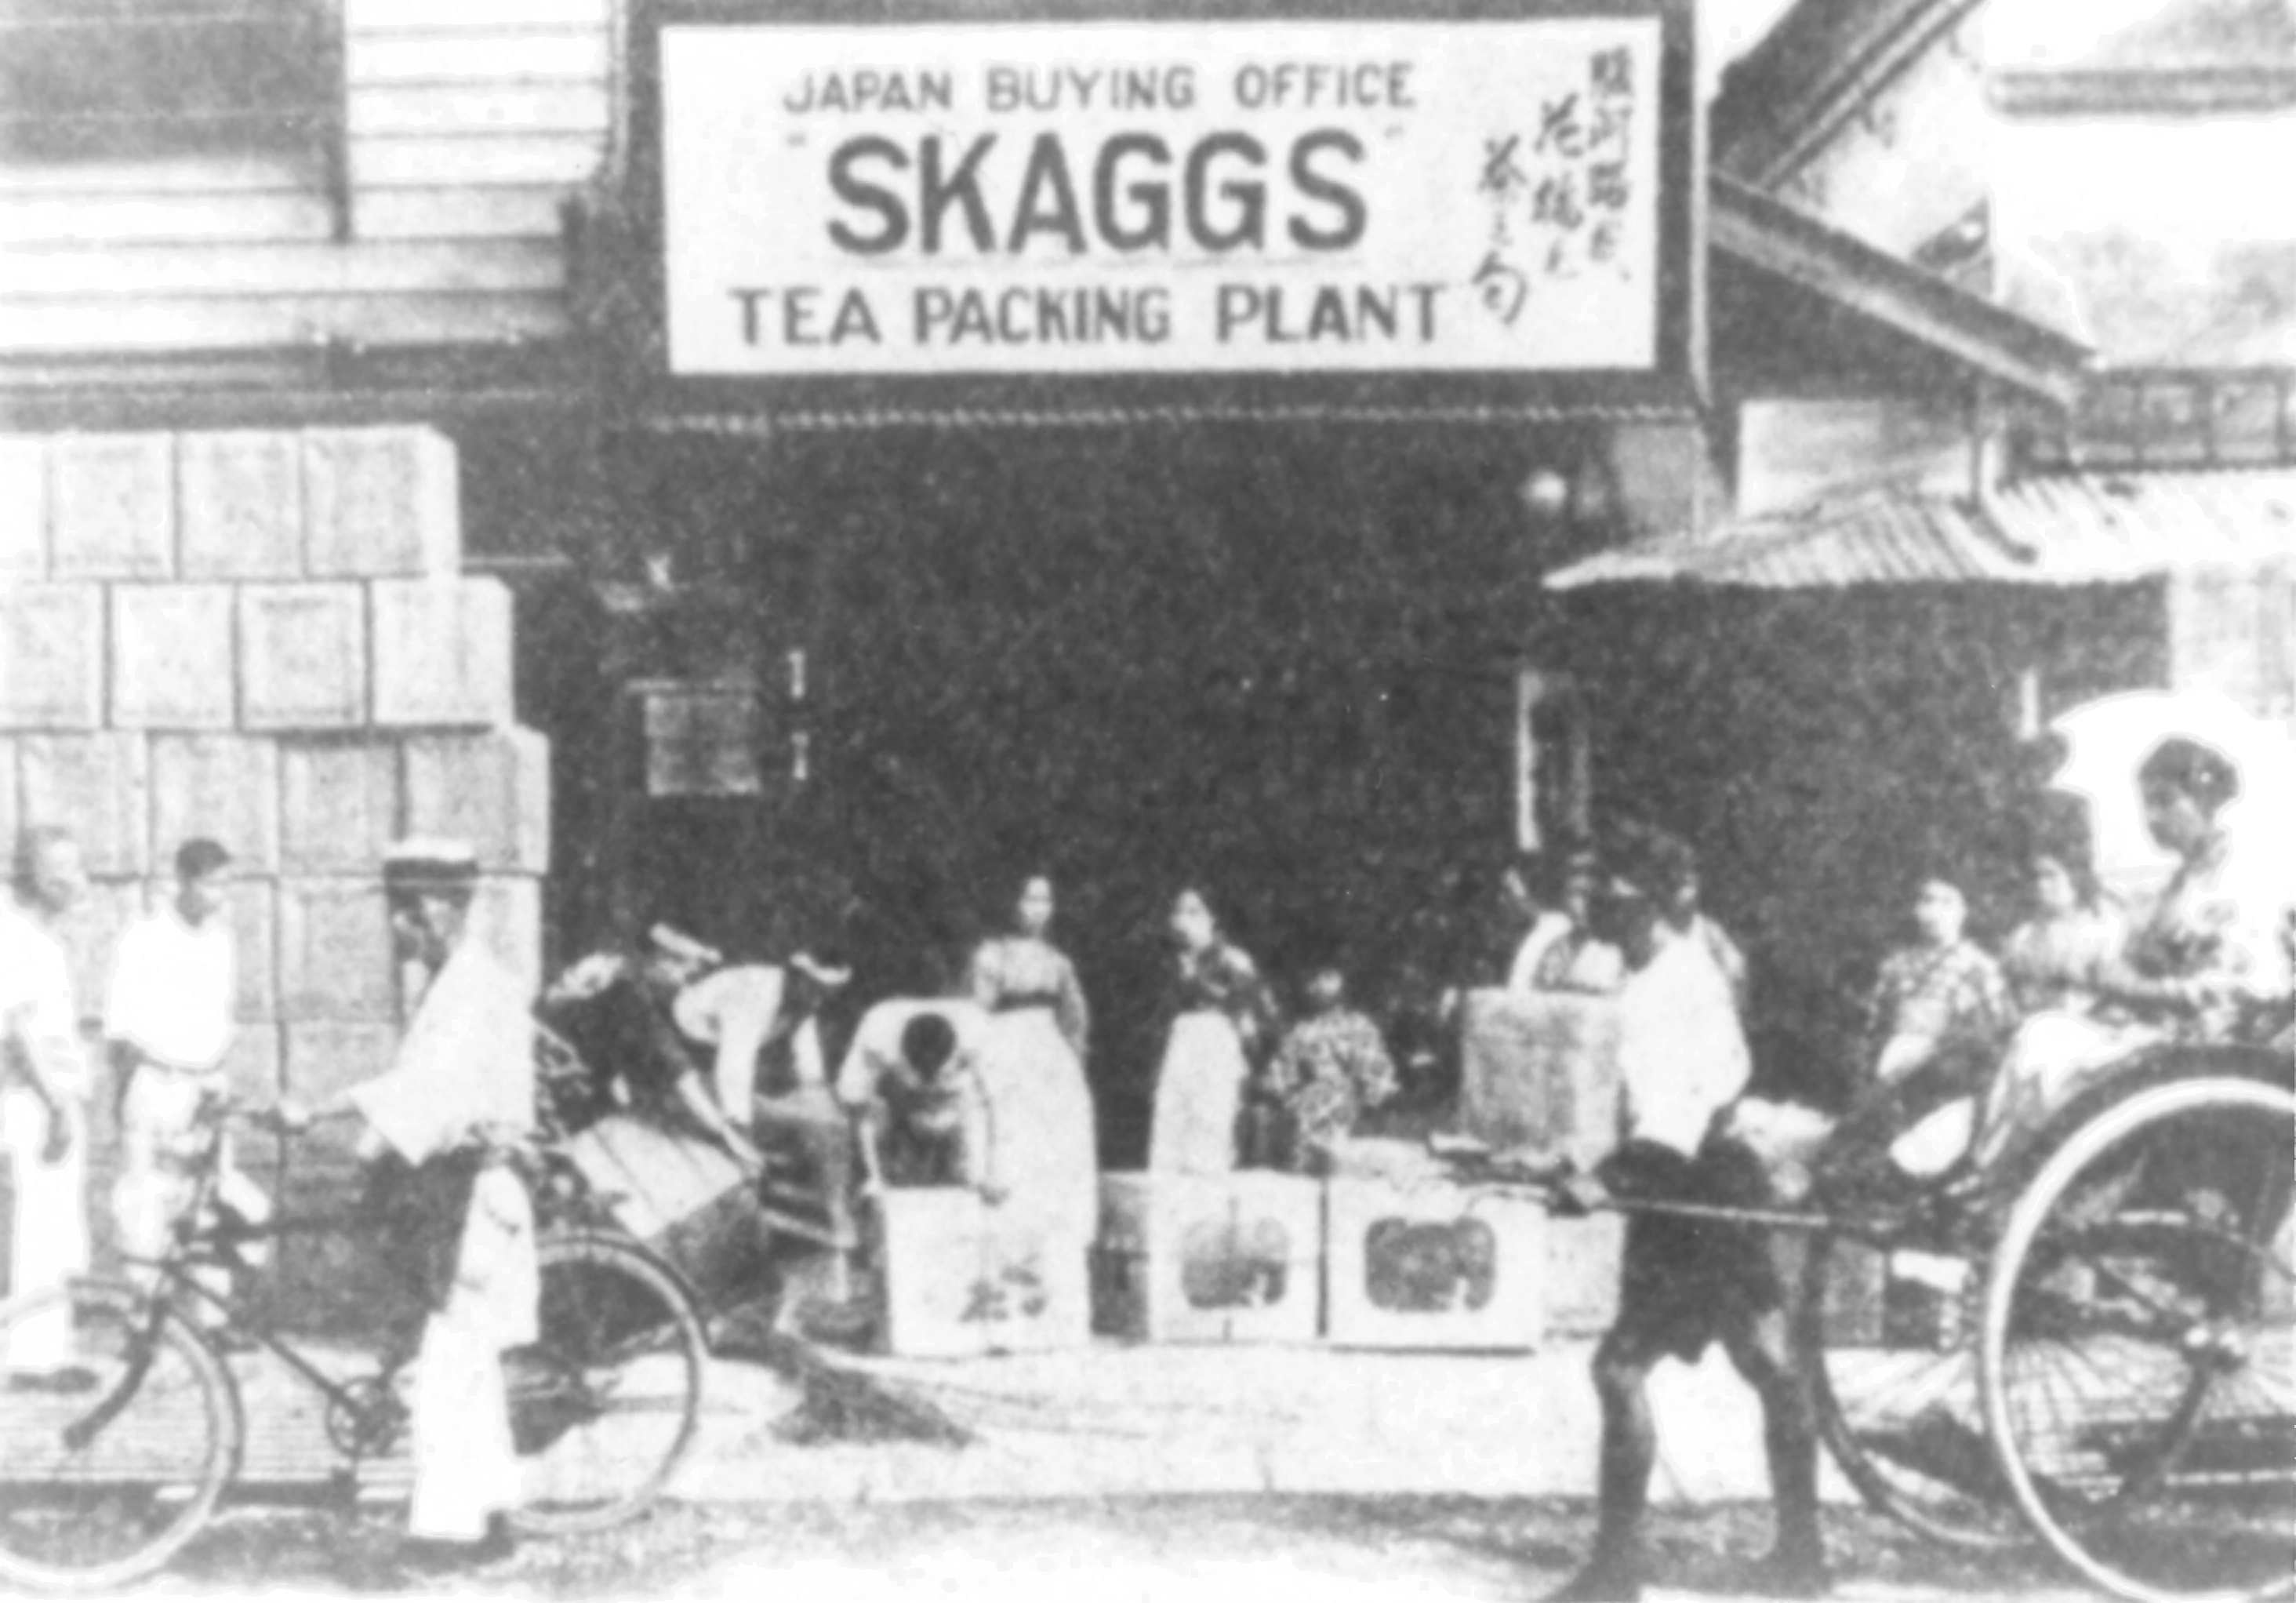 Skagg Tea Packing Plant